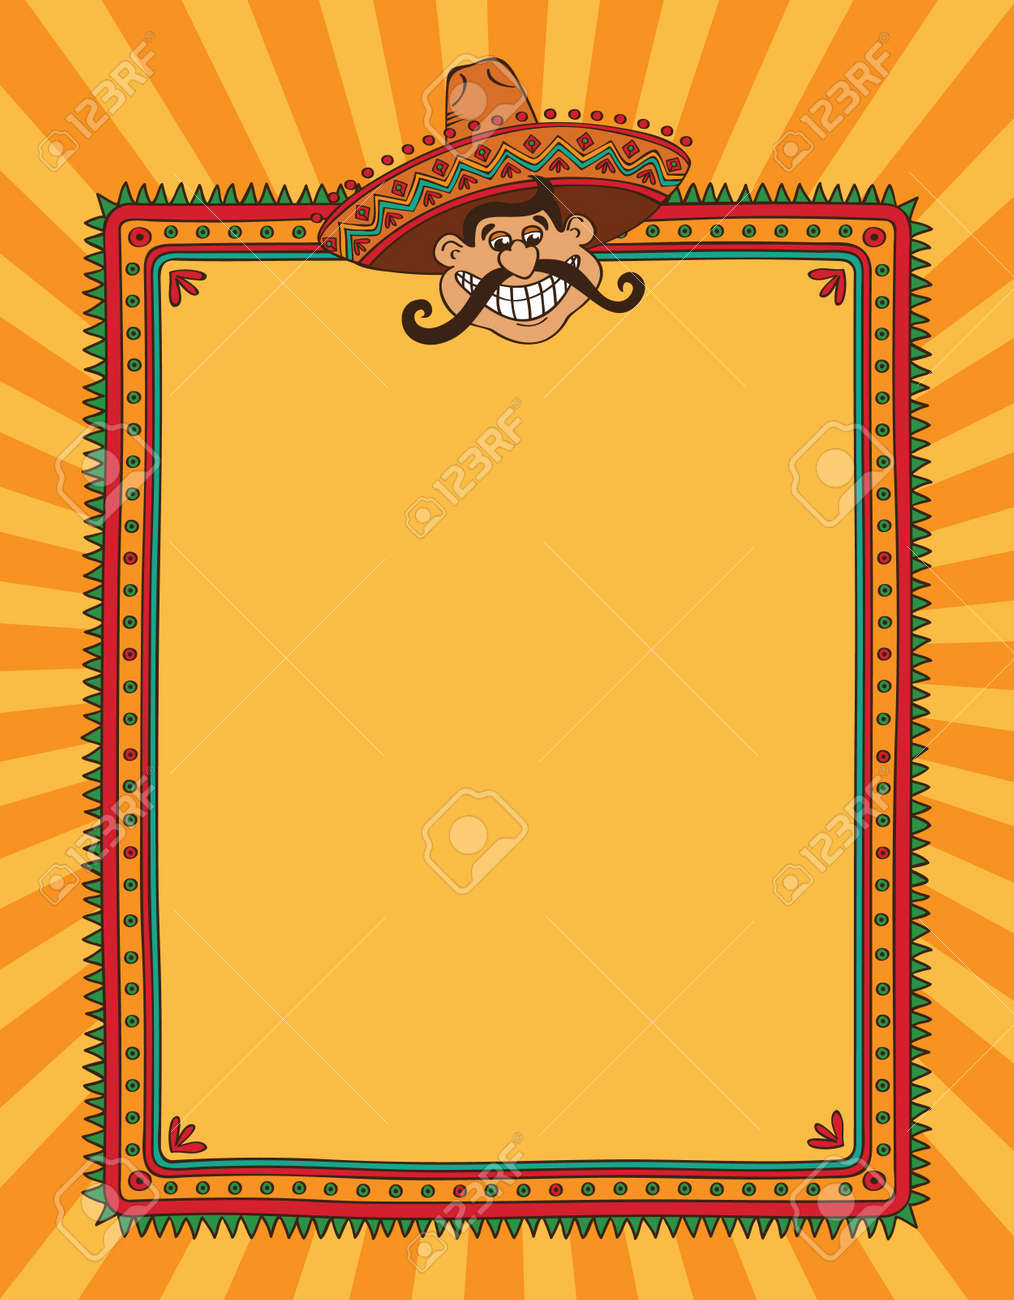 frame with head of mexican man royalty free cliparts, vectors, and